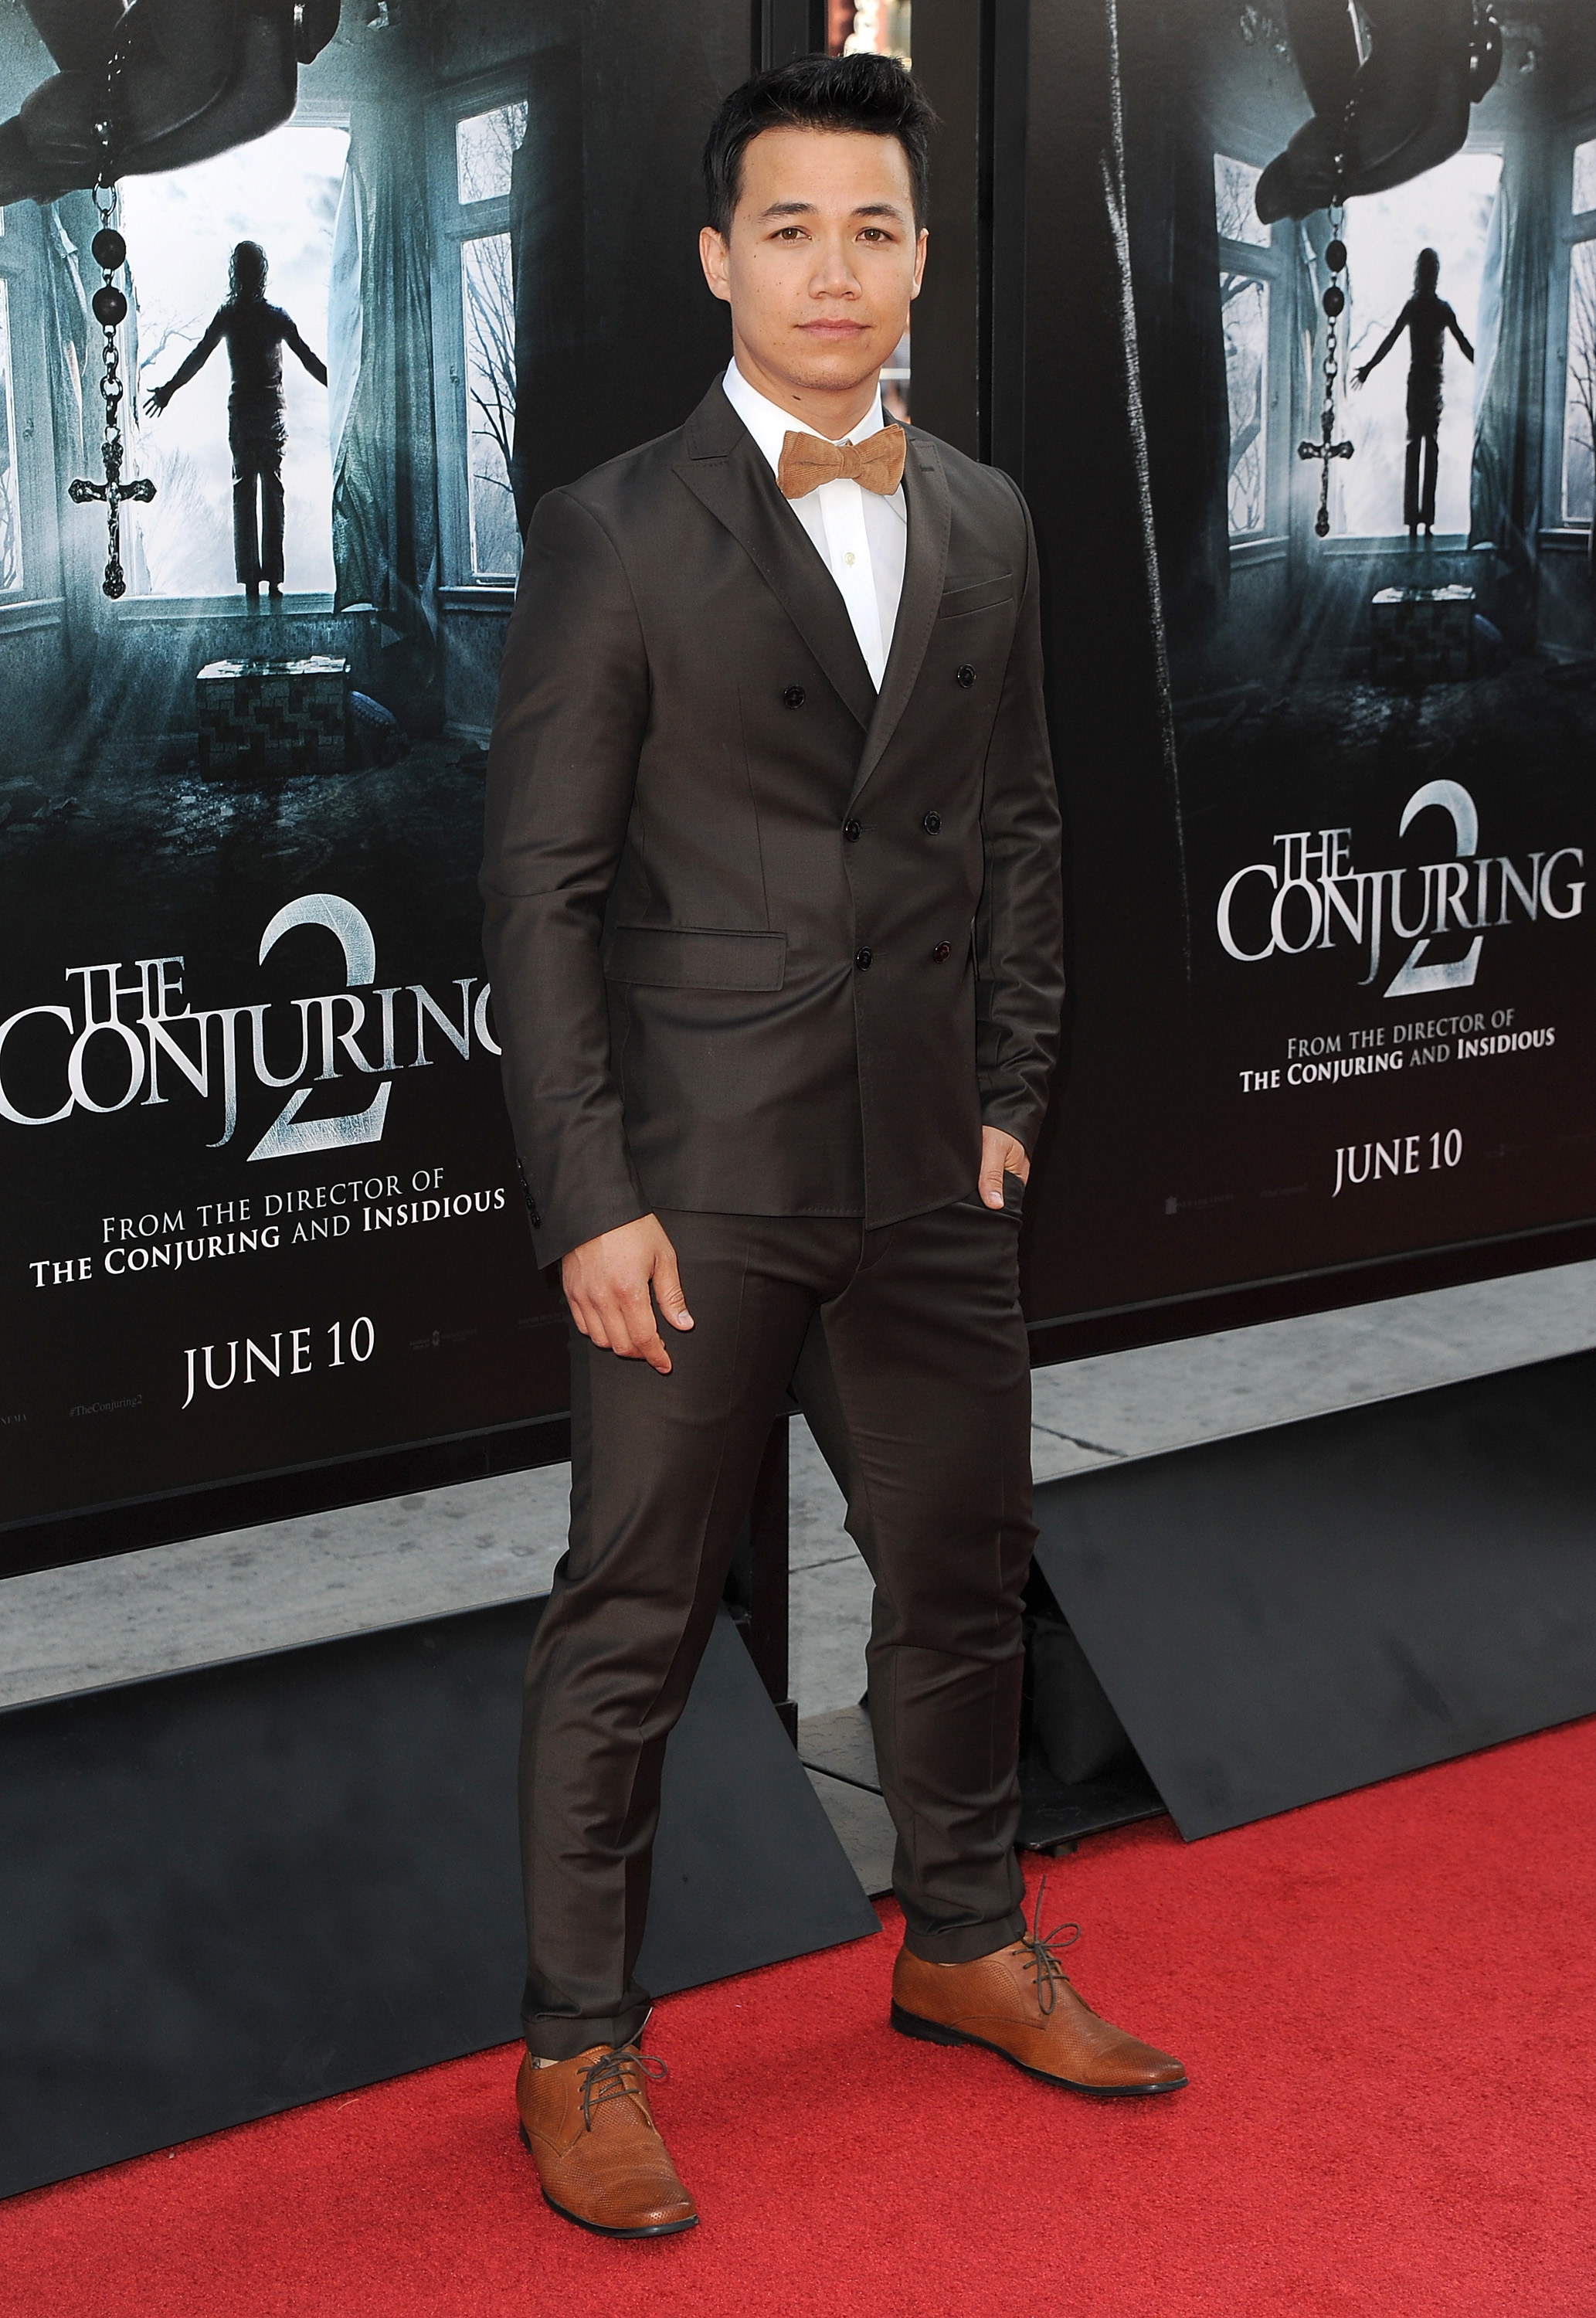 Shannon Kook on the red carpet